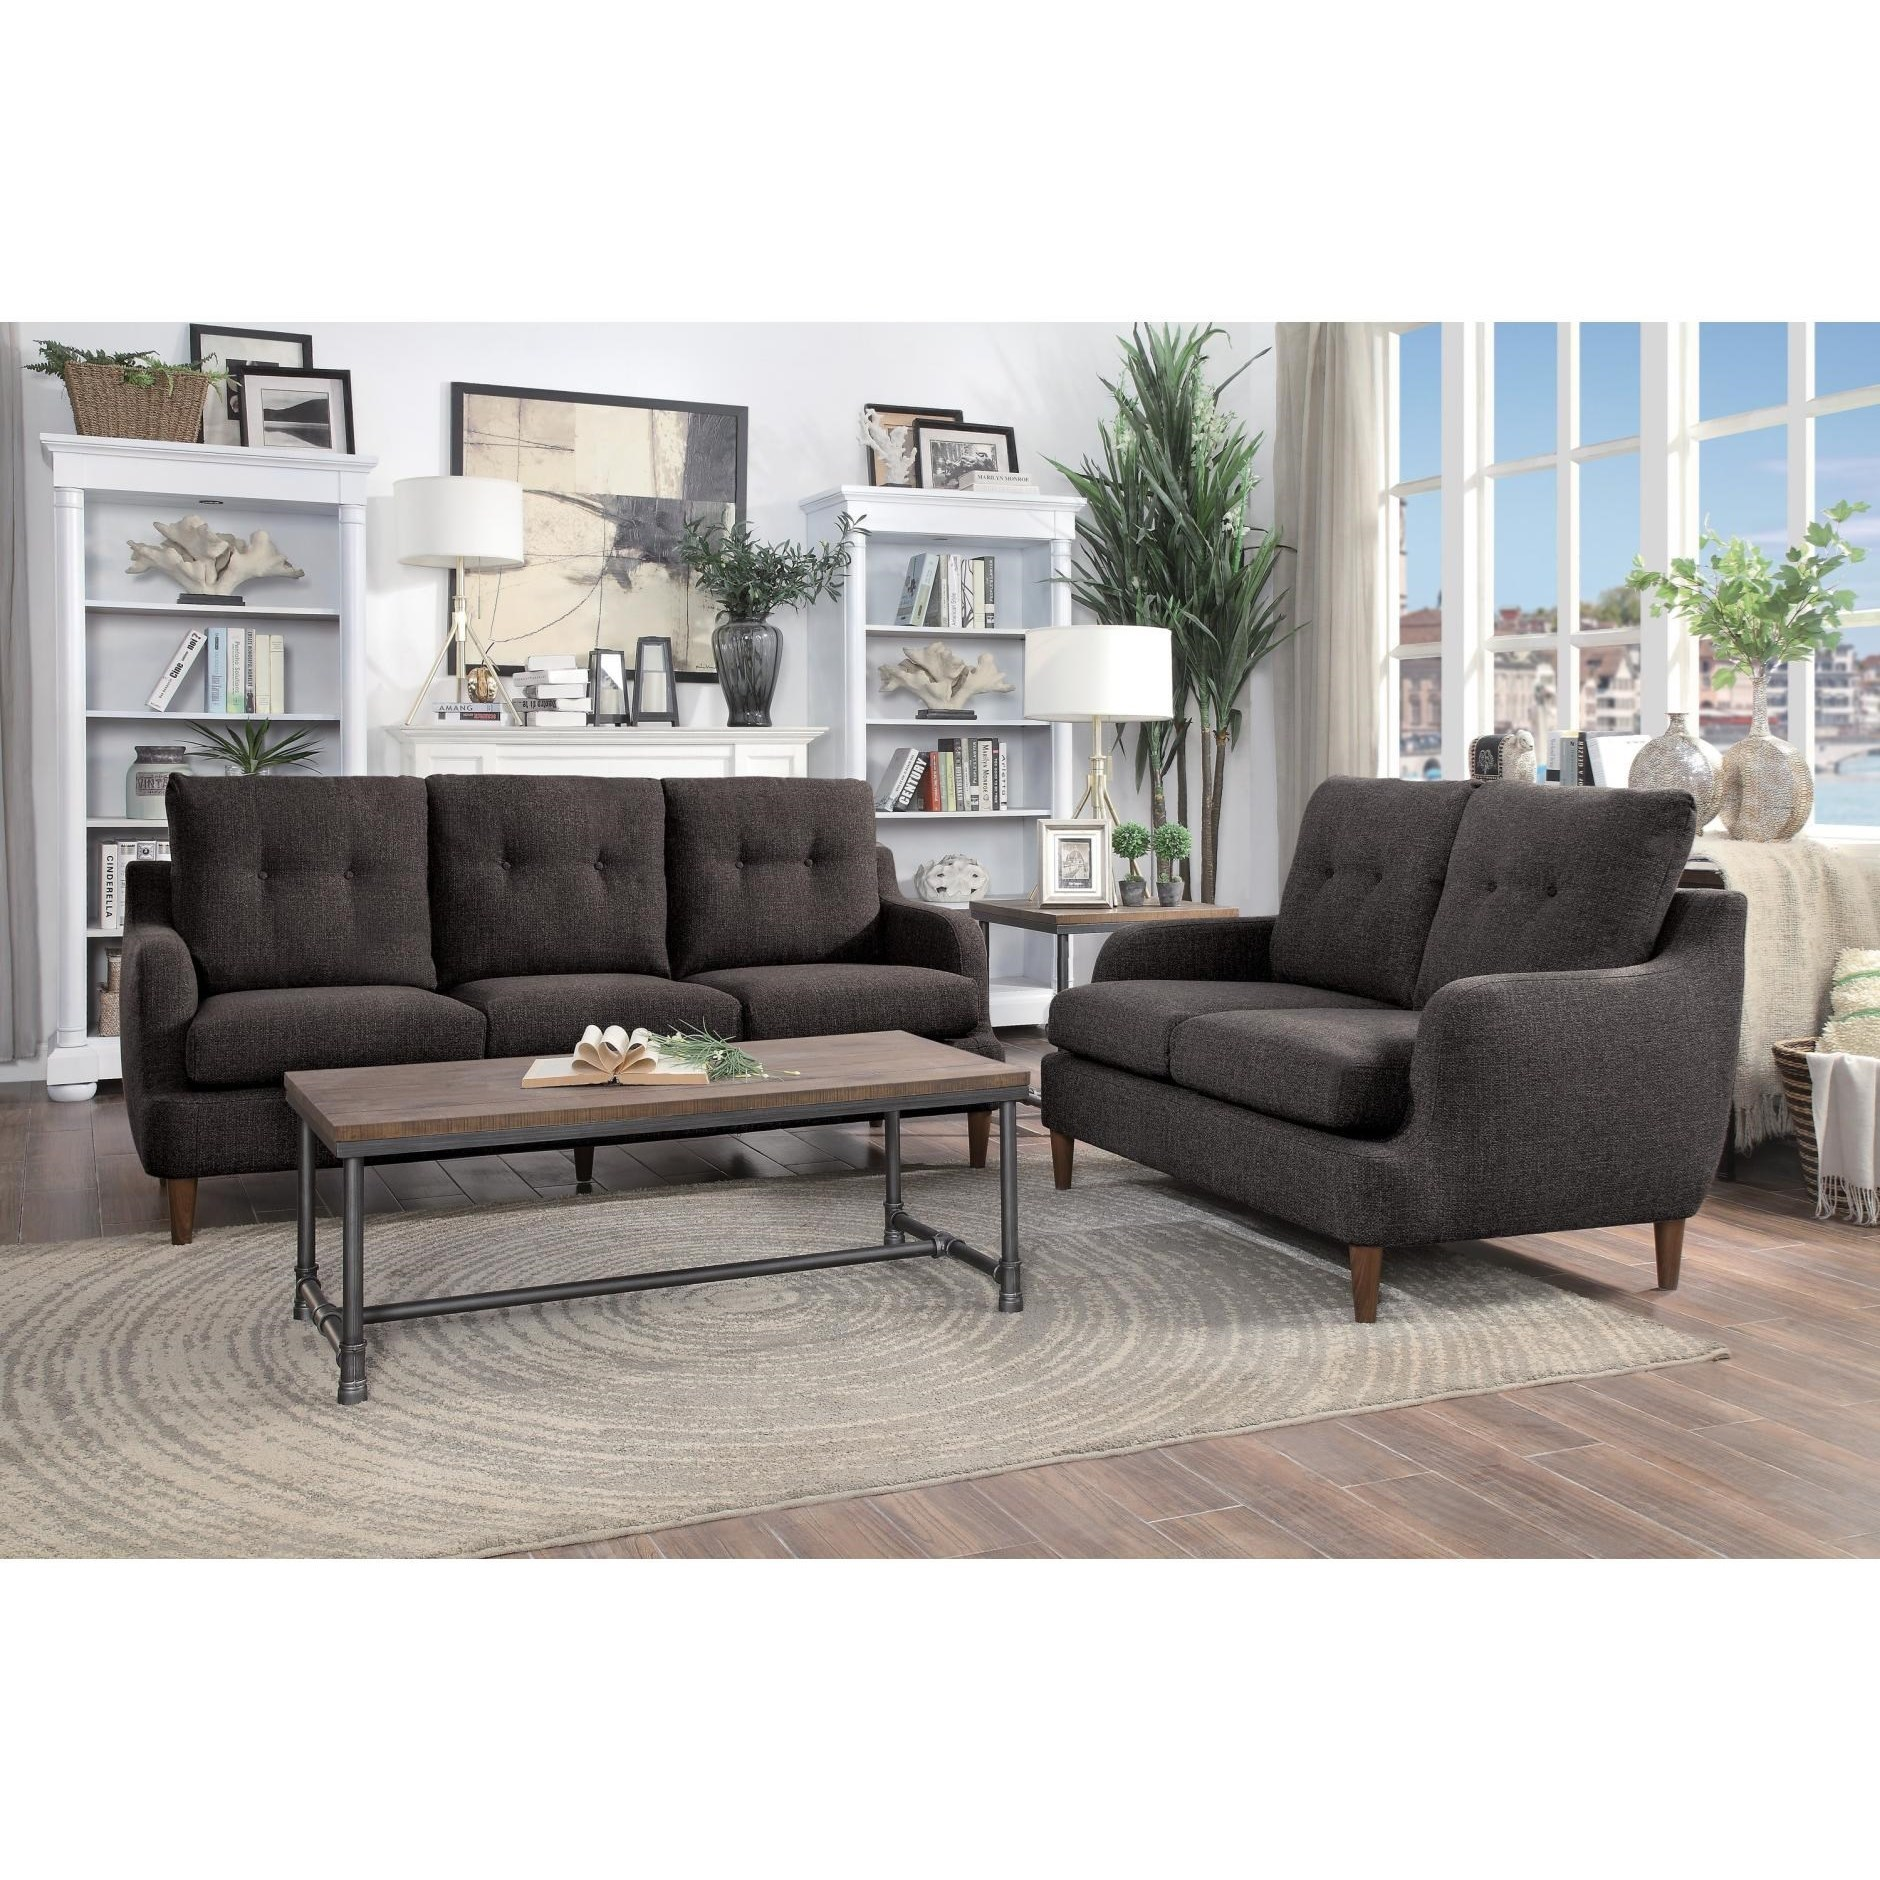 Cagle Stationary Living Room Group by Homelegance at Corner Furniture